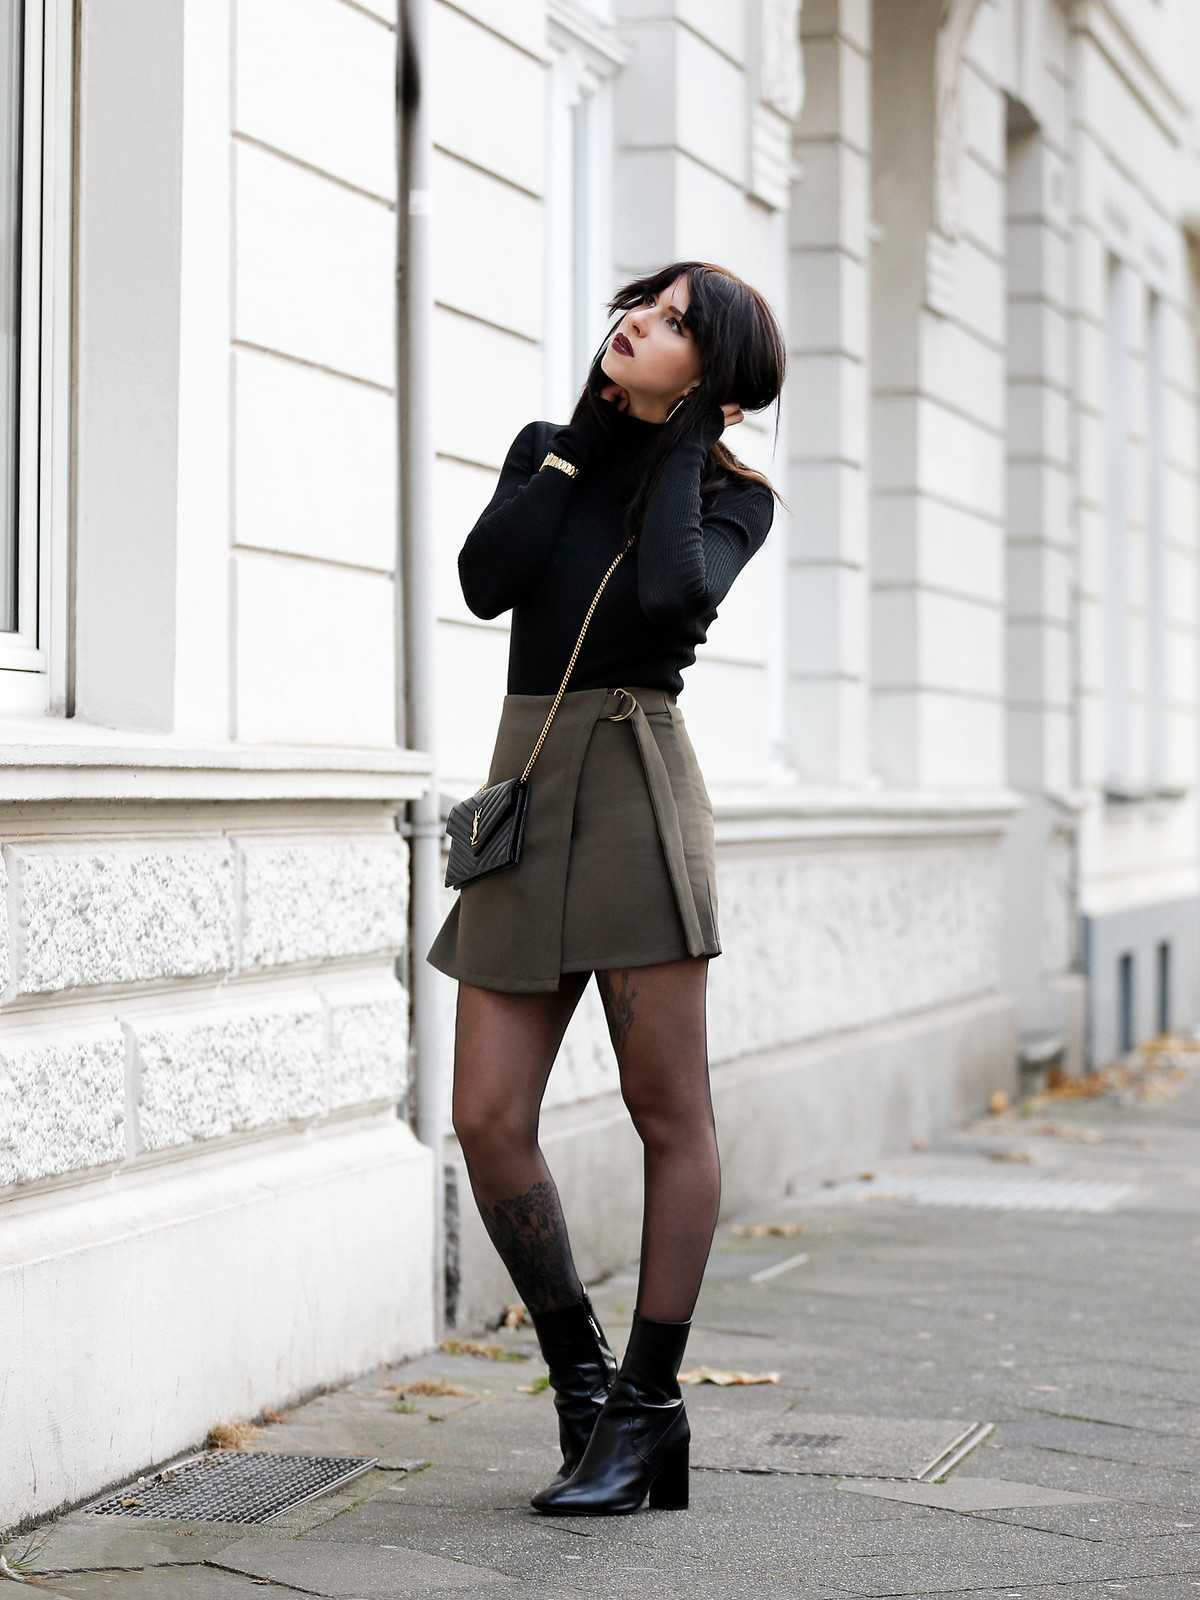 ootd outfit look magazine style mag fashion fashionblogger autumn gothic look black lips dark turtleneck golden watch ysl saint laurent paris bag mini skirt legs boots bangs brunette parisienne modeblogger düsseldorf berlin cats & dogs ricarda schernus 6